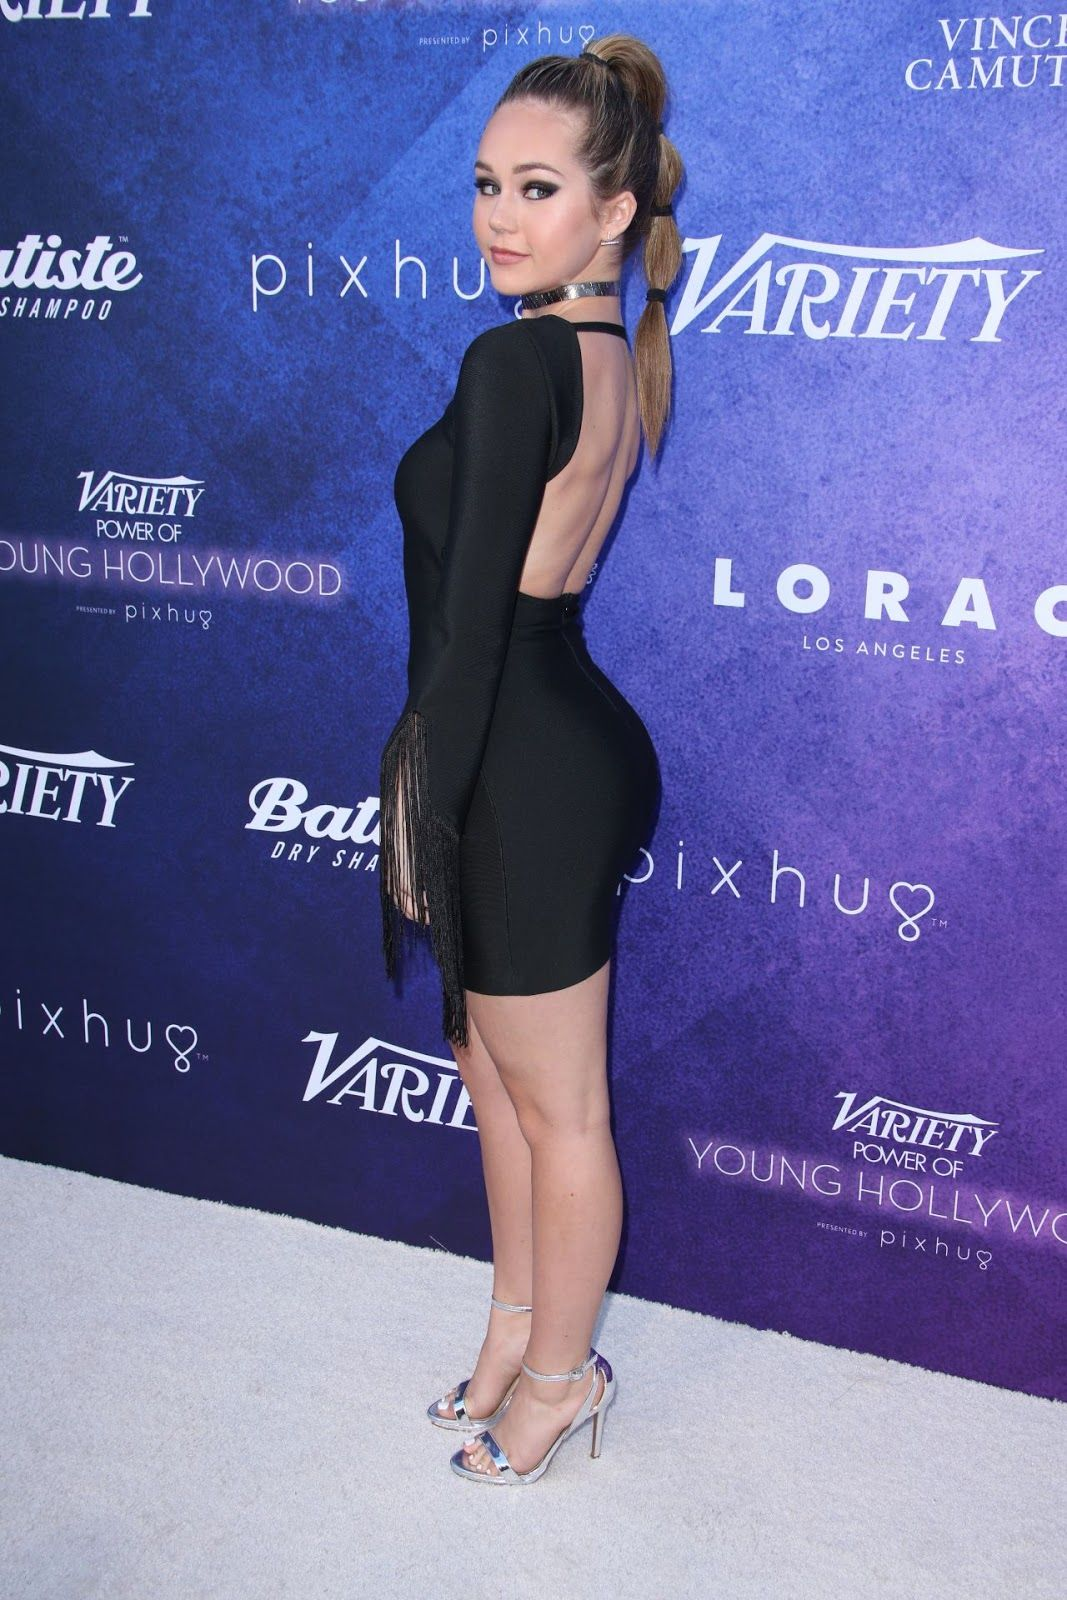 brec-bassinger-variety-power-of-young-hollywood-5.jpg (1067×1600 ...